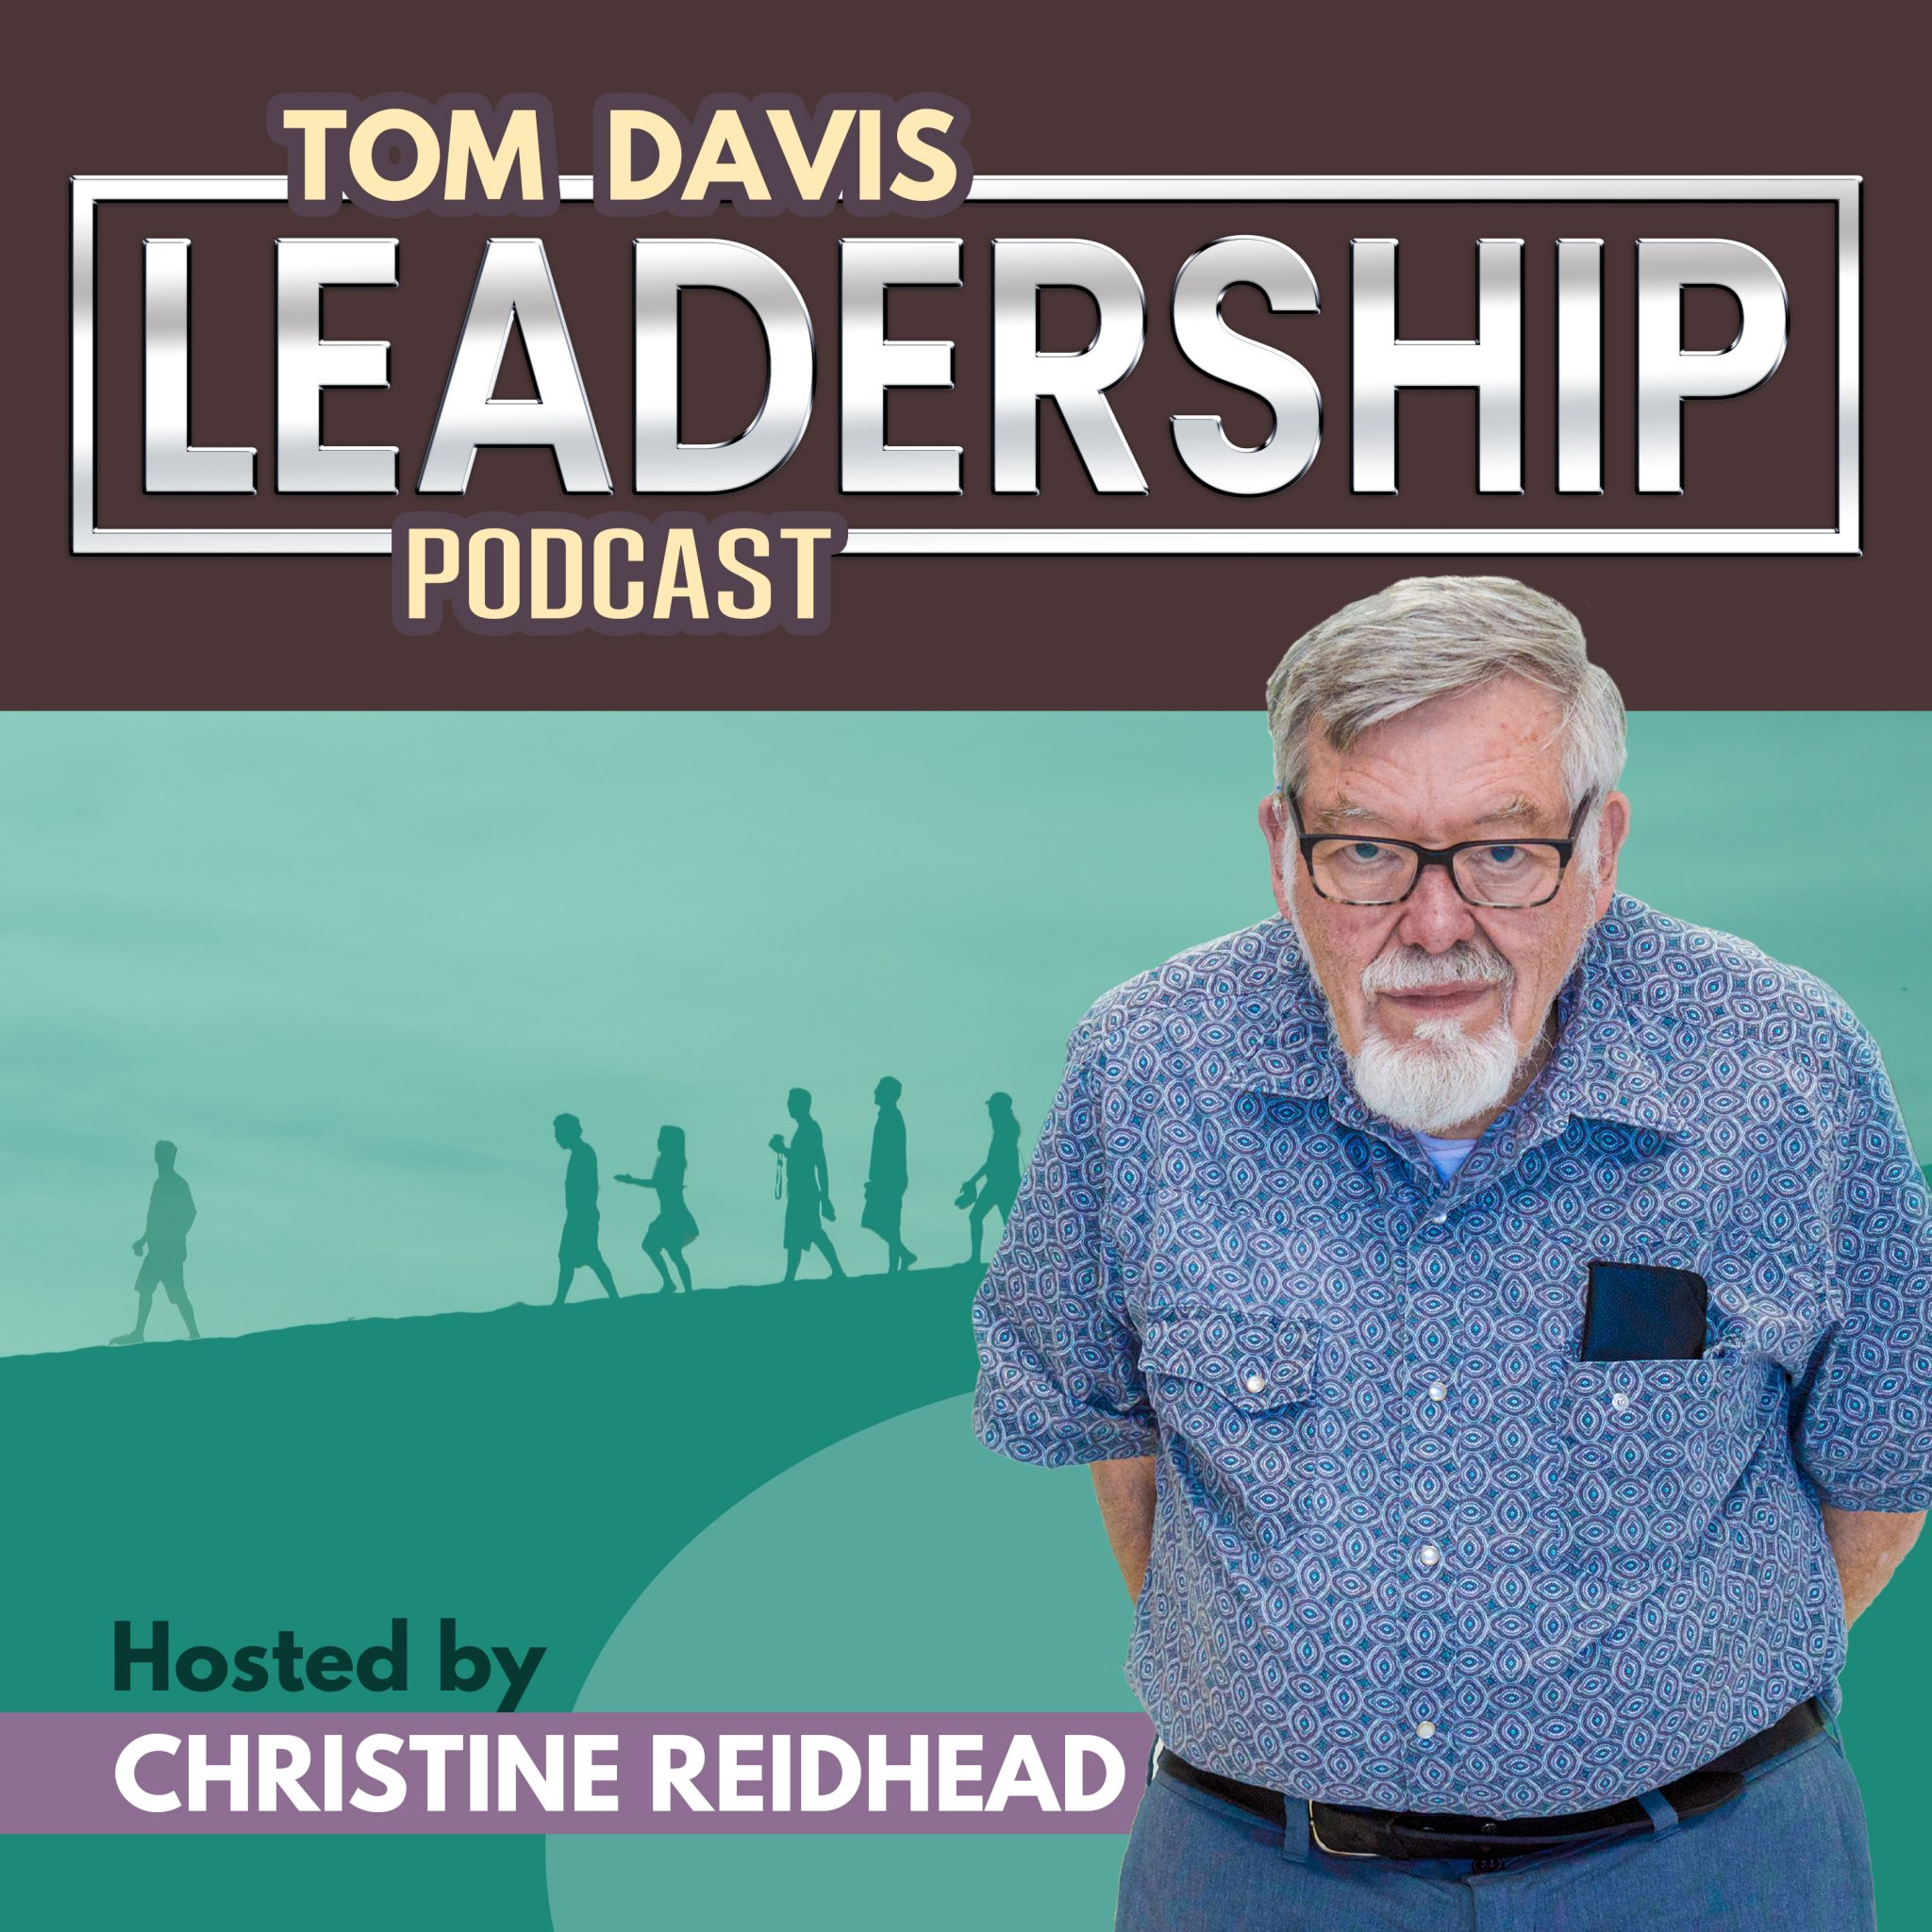 Tom Davis Leadership Podcast Hosted by Christine Reidhead